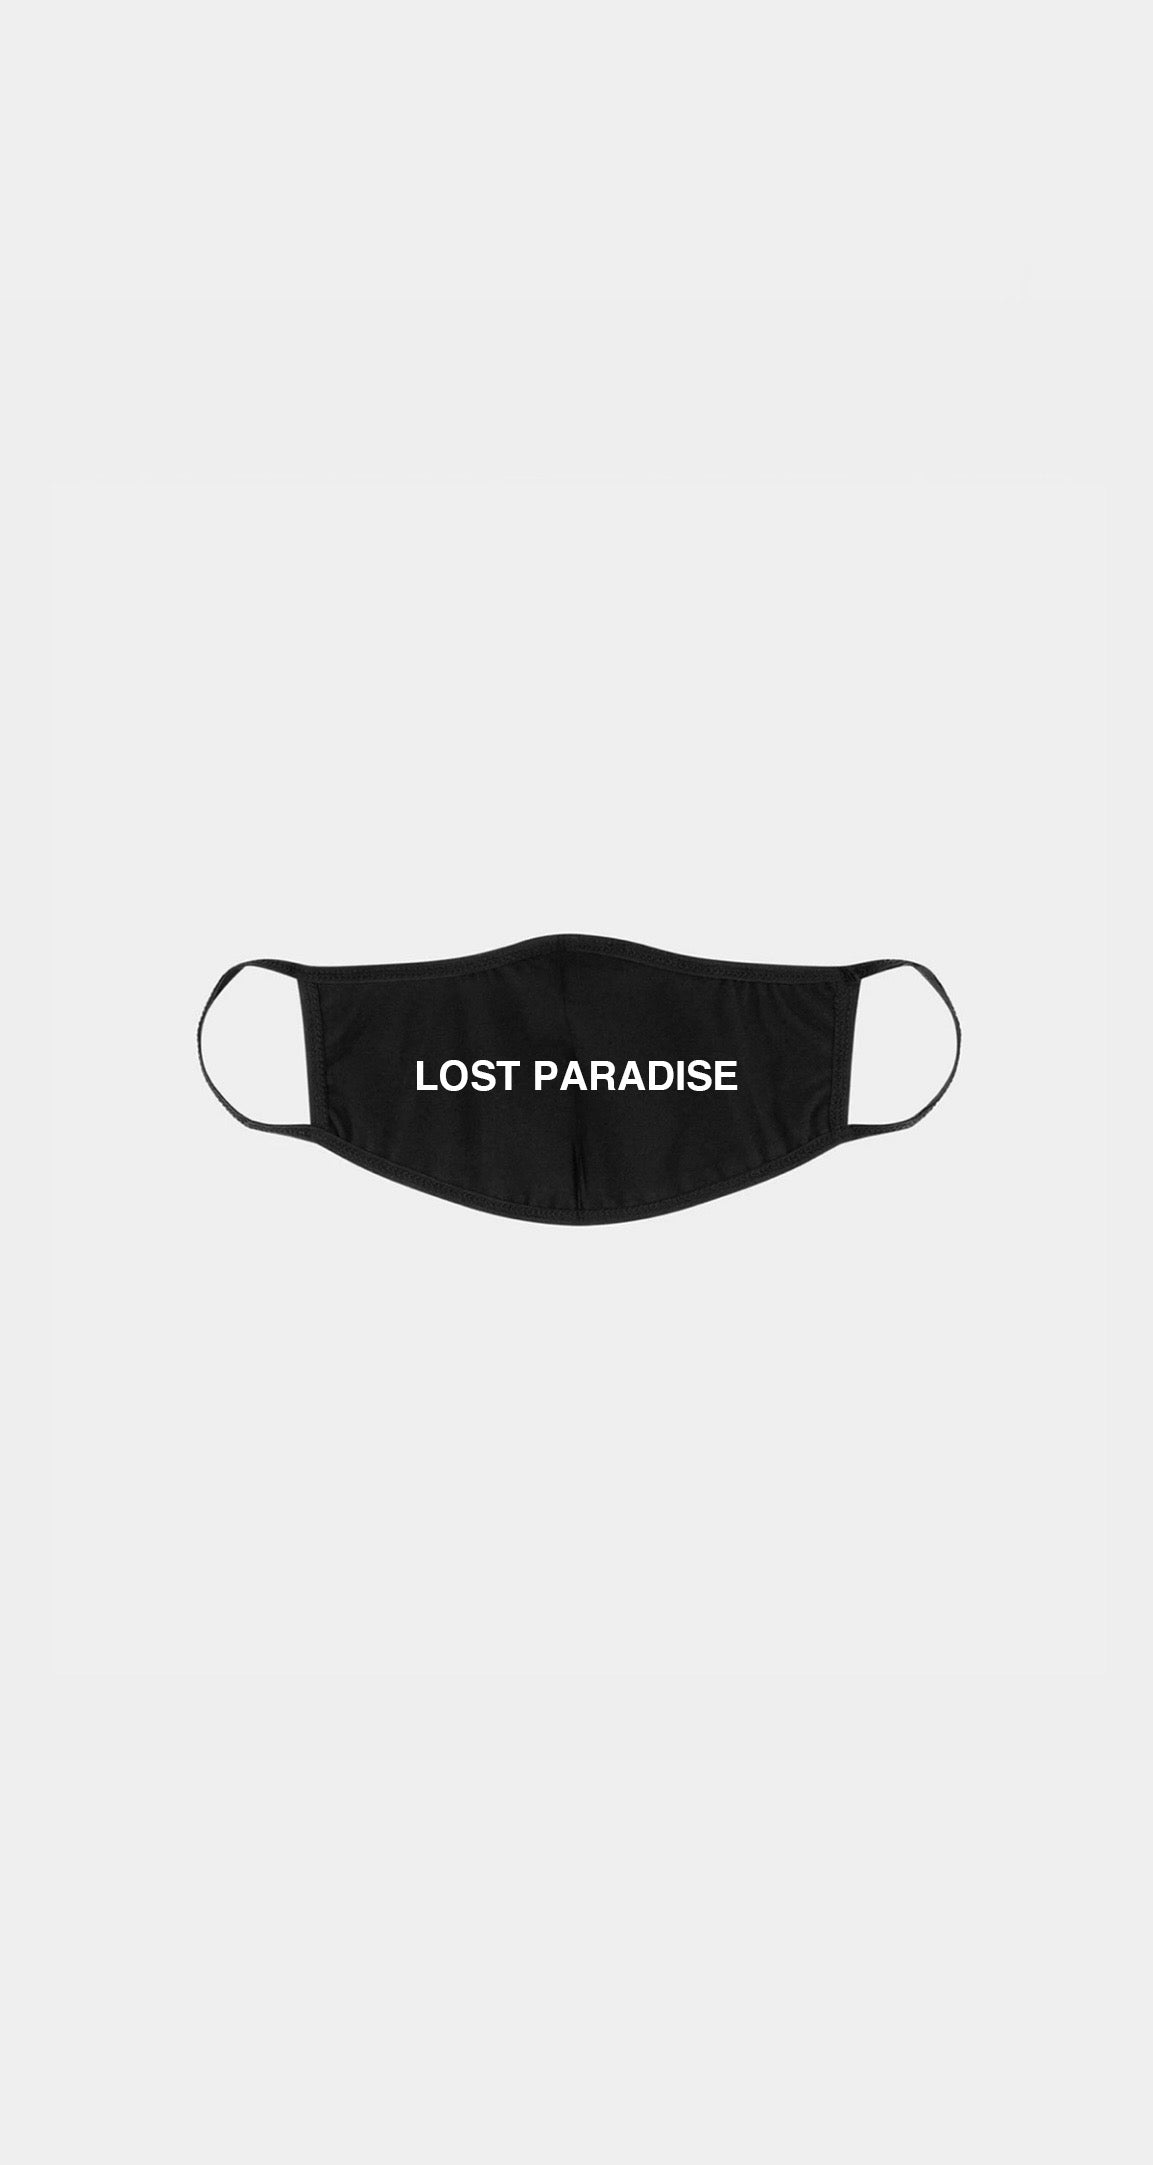 Lost Paradise Face Mask